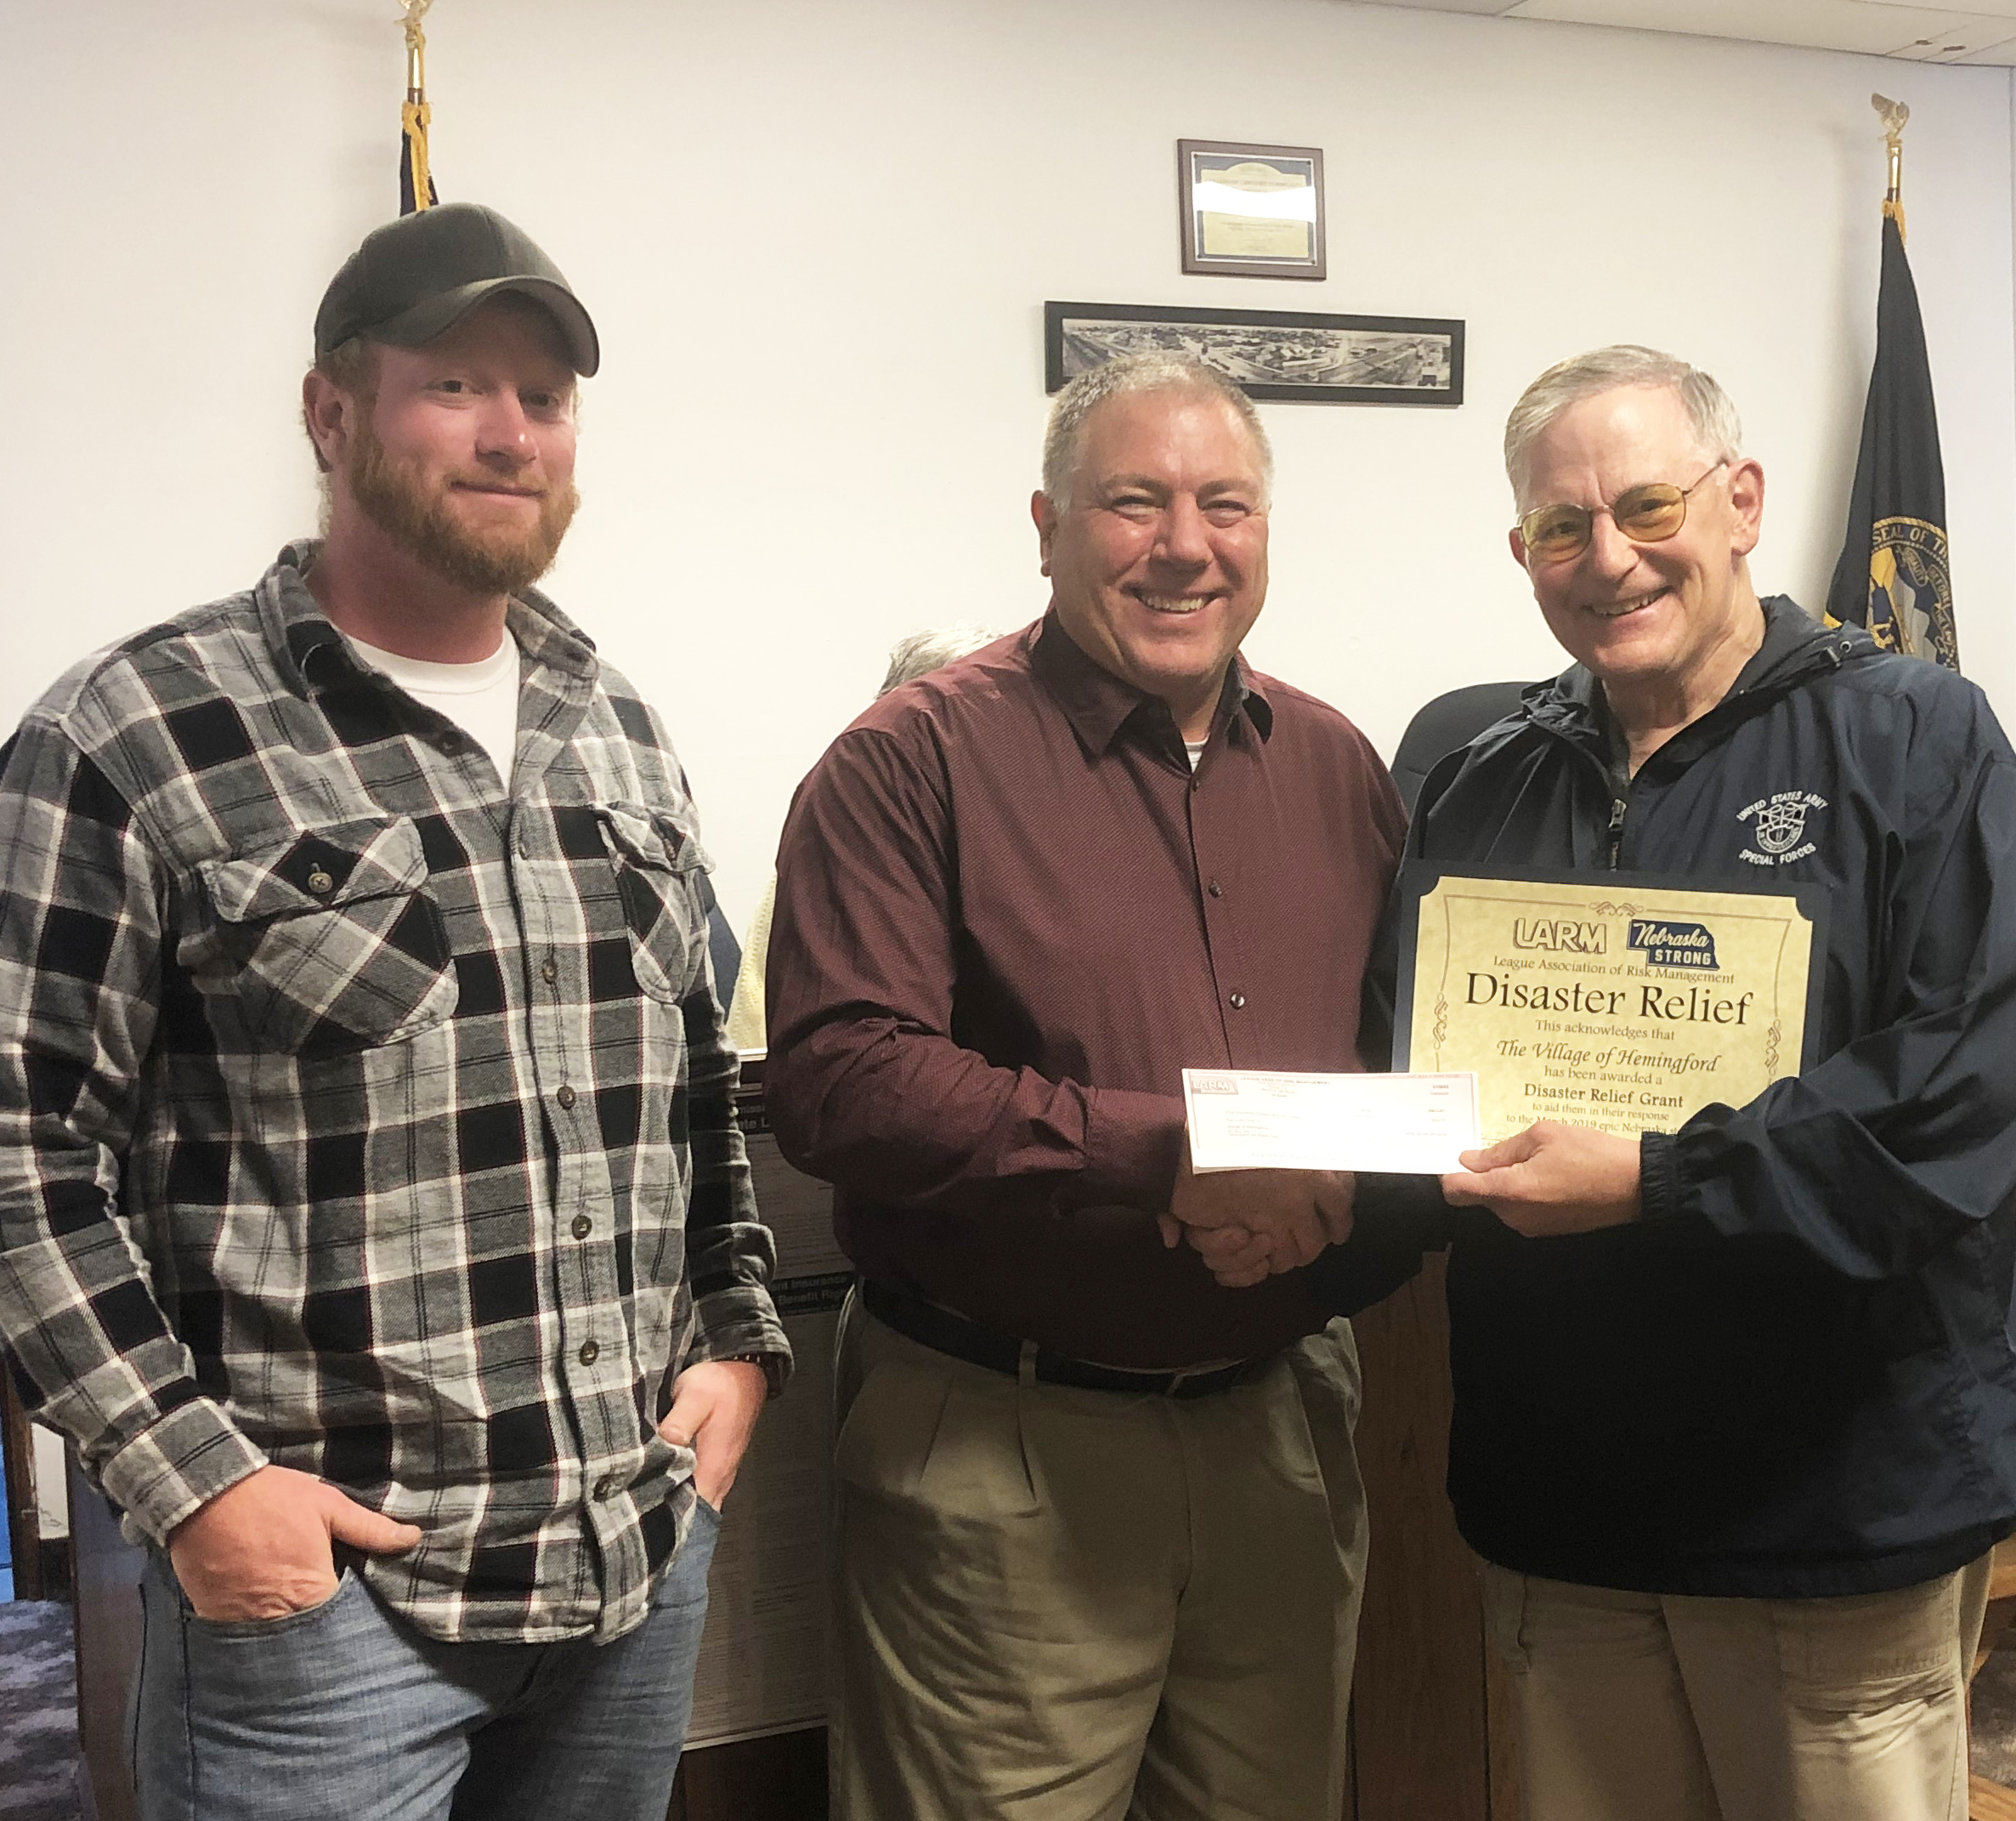 Village of Hemingford receives $500